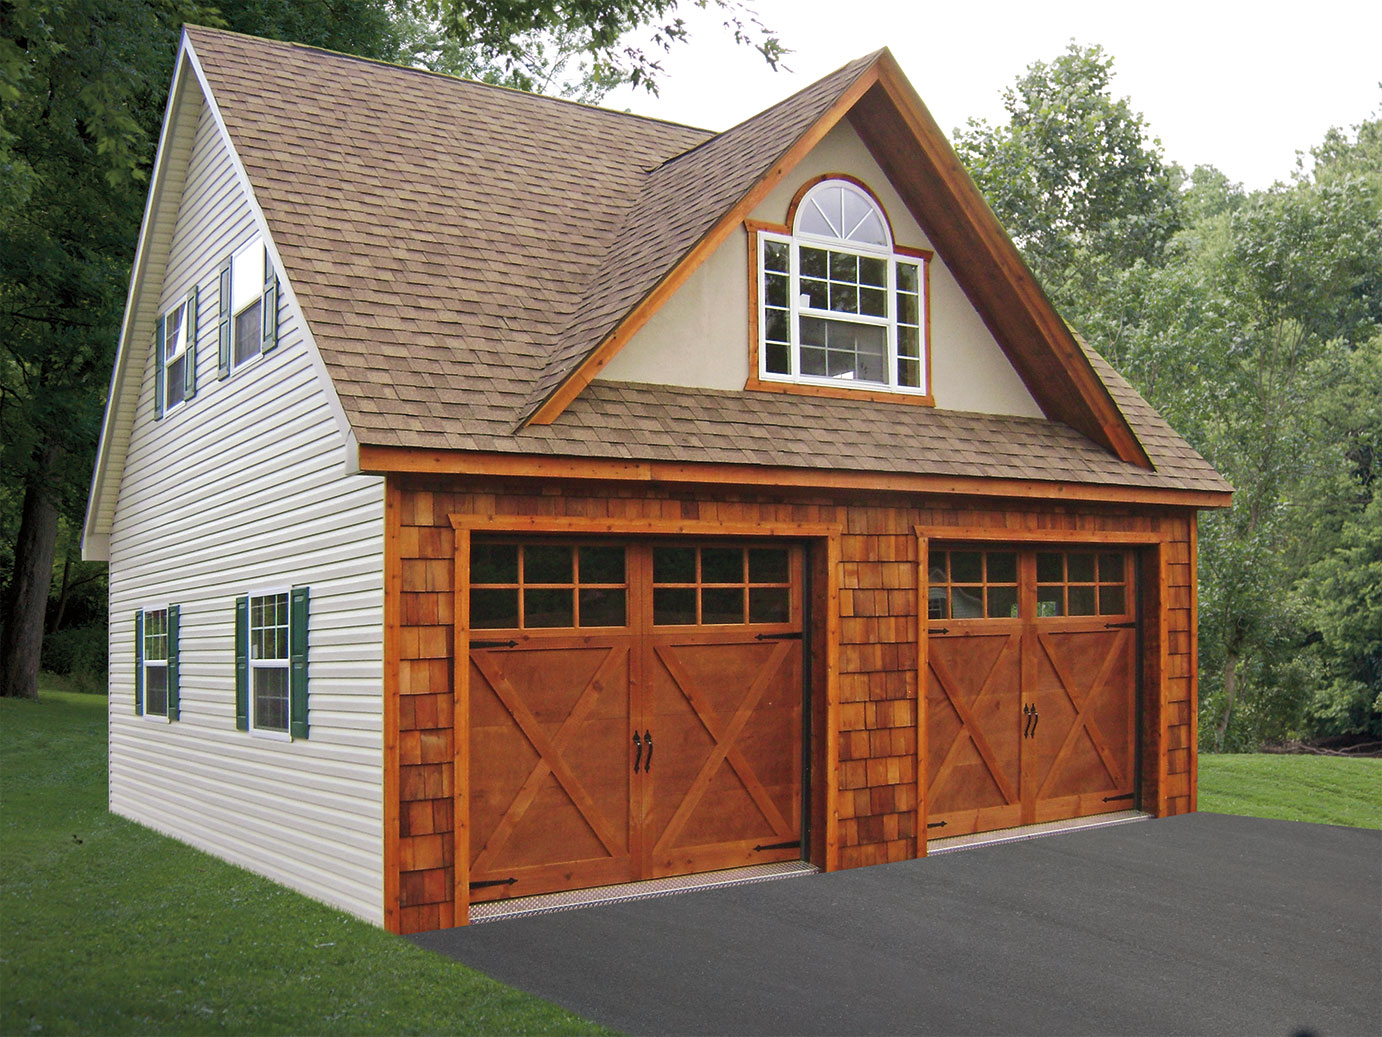 Built on site custom amish garages in oneonta ny amish for Garage with attic